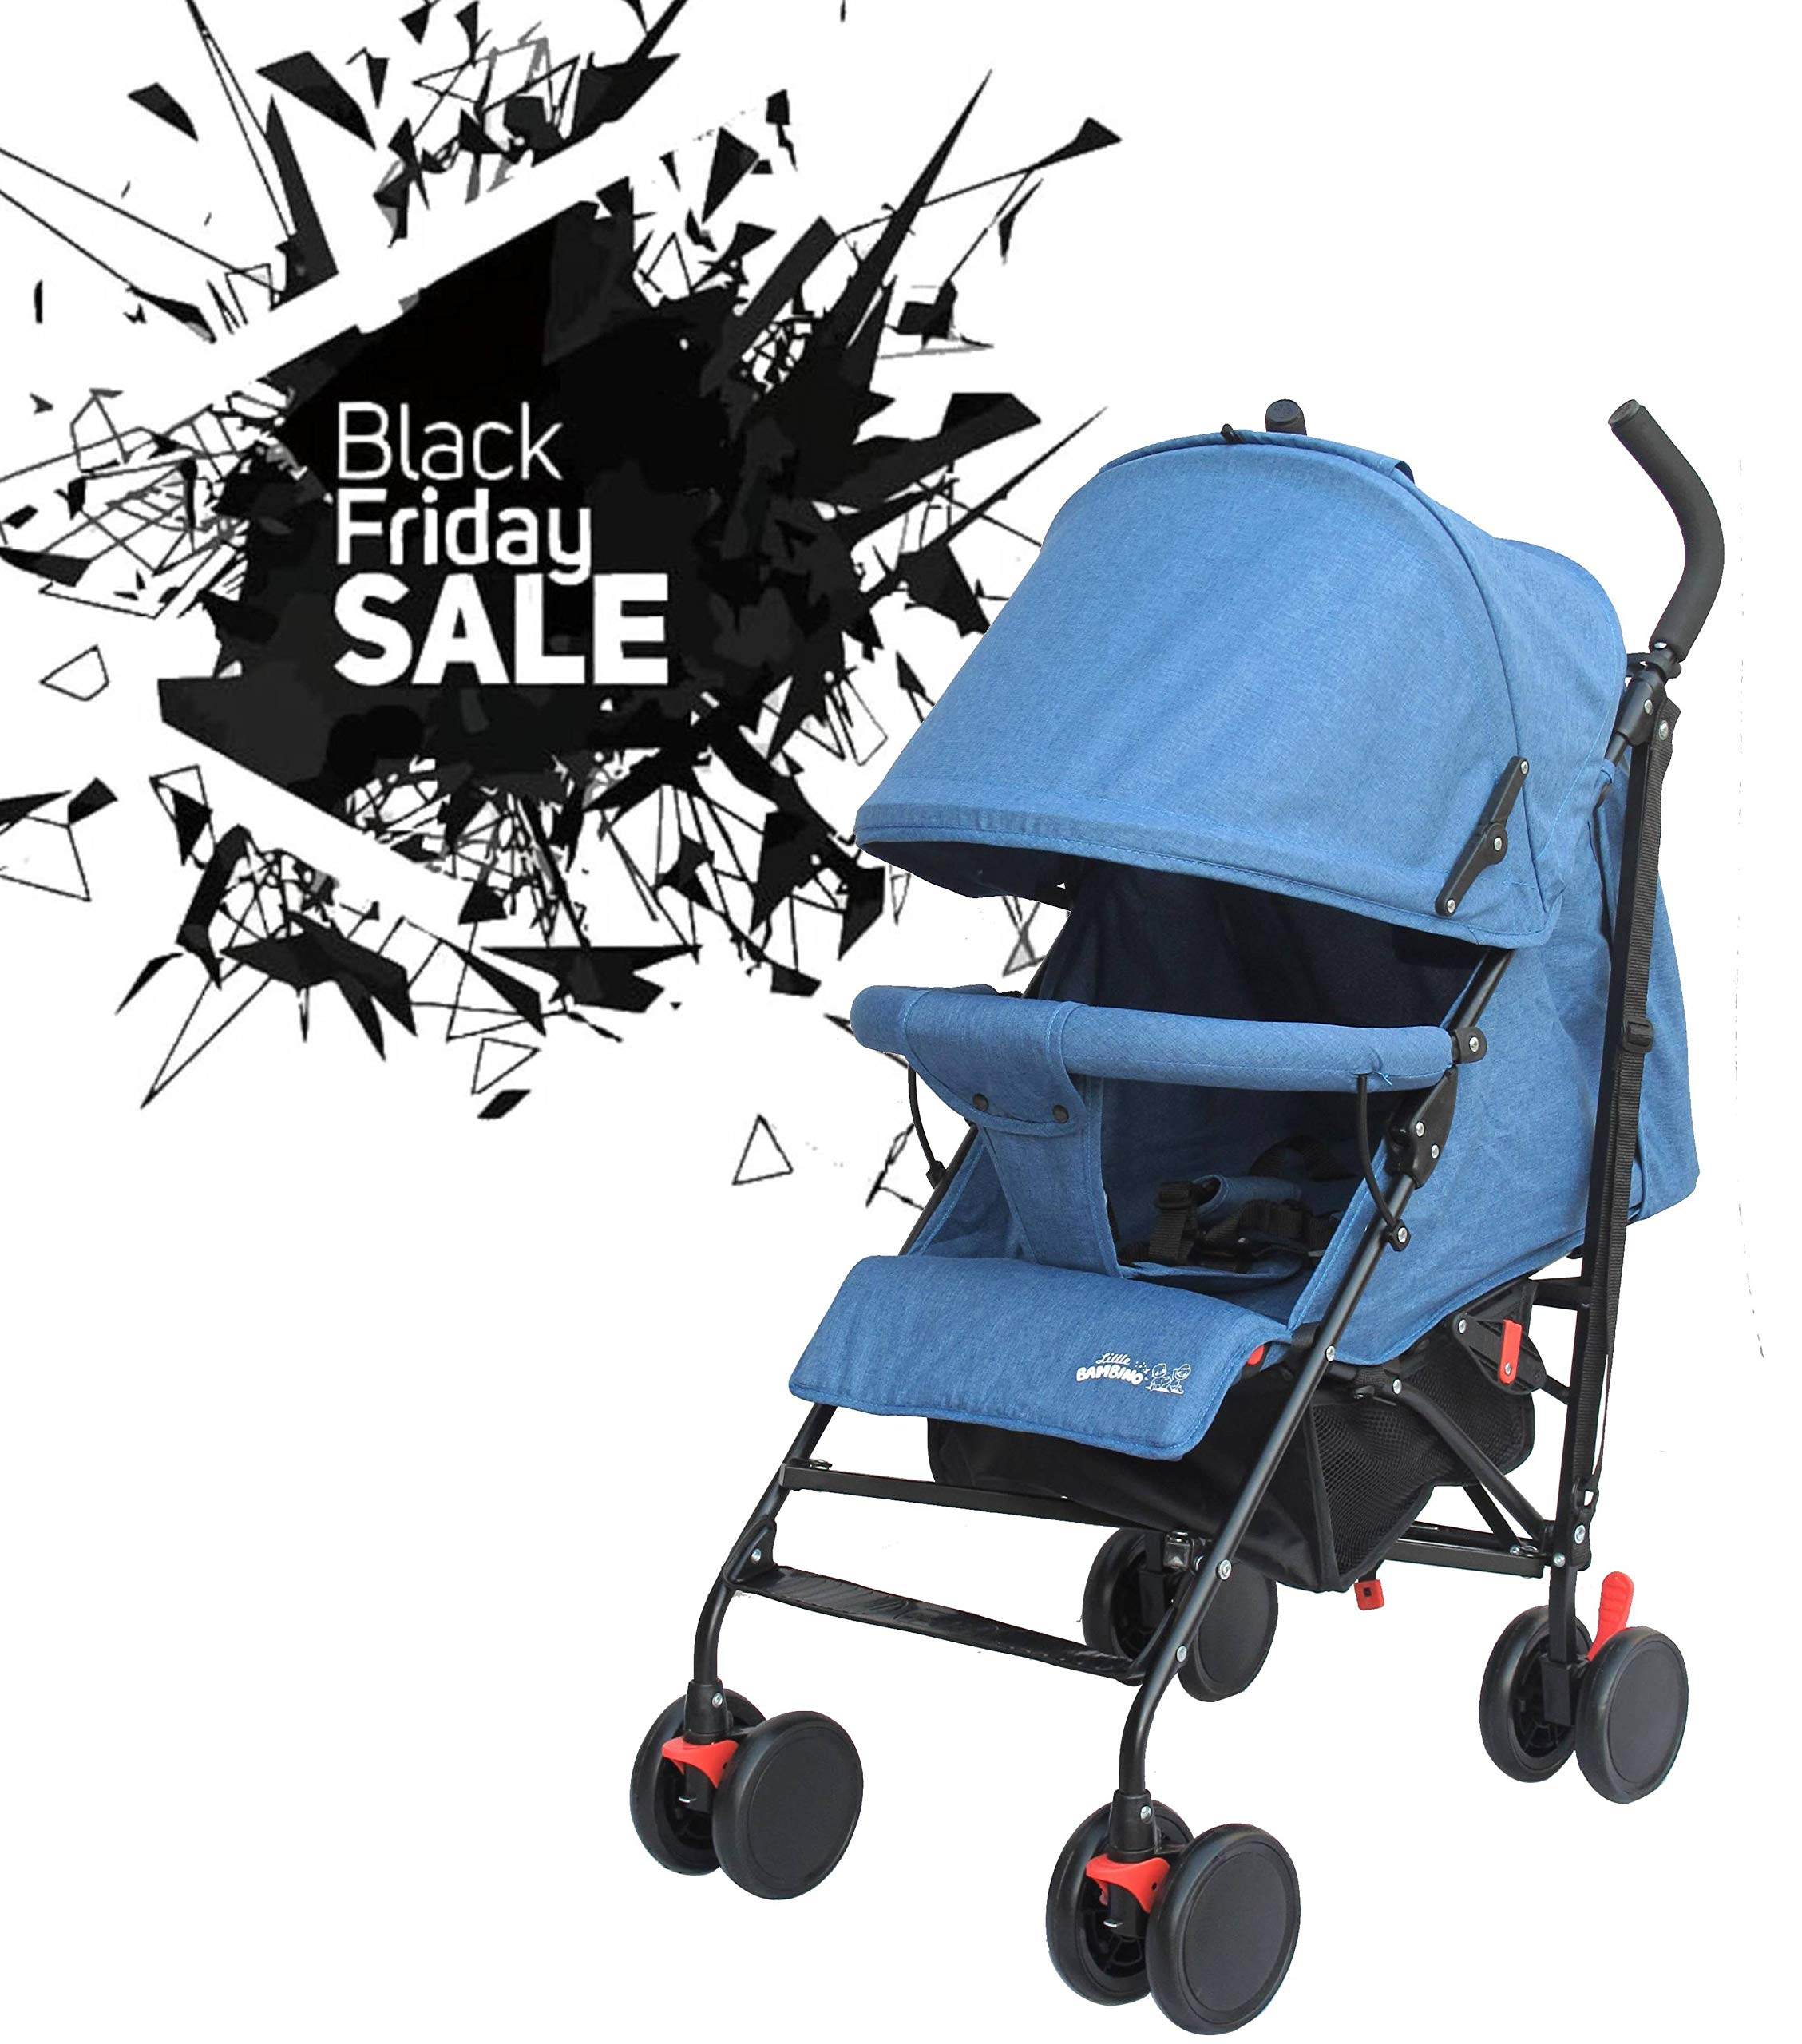 Stroller for Kids Lightweight Buggy Easy Fold Travel Stroller Buggy Foldable for Travel (Blue) Little Bambino ✨Extendable upf 50+ sun canopy and built-in sun visor ✨EASY USAGE - One-hand foldable buggy makes taking your baby for travels or walks a simple pleasure. It could stand on its own so you could take care of your baby with less things to worry about. ✨ADJUSTABLE BACKREST - Travel stroller backrest can be adjusted. Suitable for children from 0 to 36 months 1